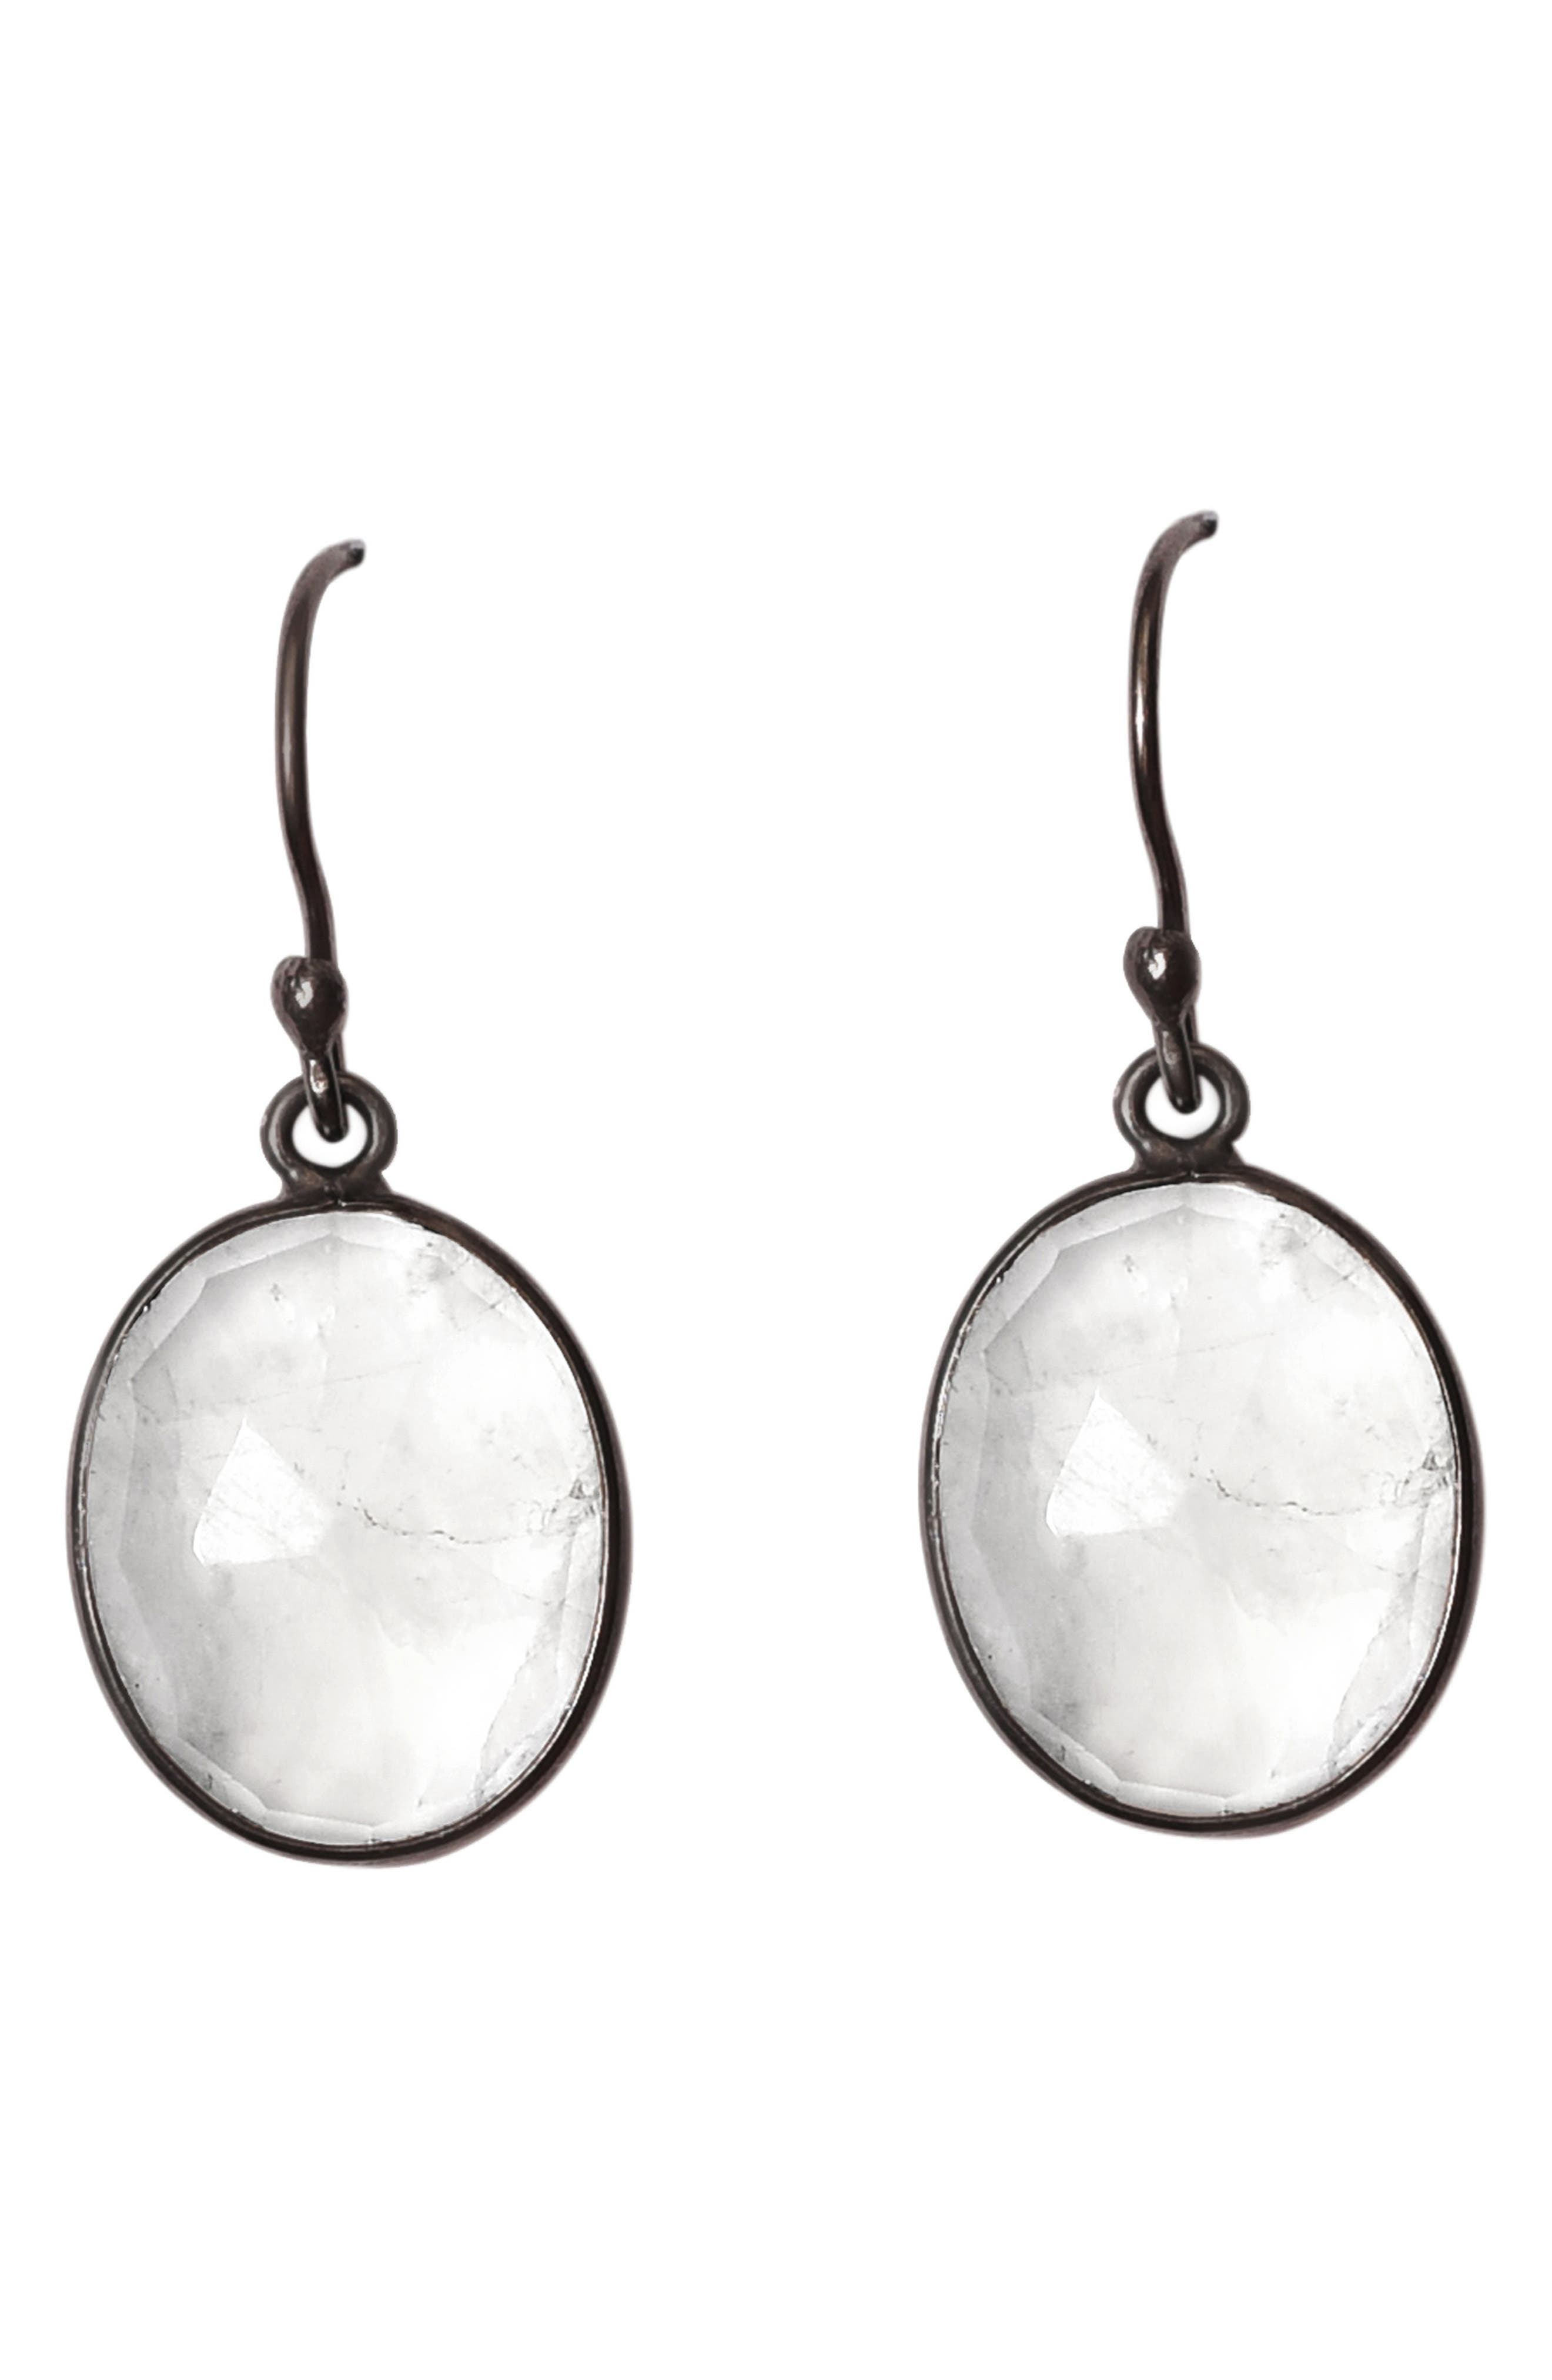 Adornia BLACK RHODIUM PLATED STERLING SILVER OVAL MOONSTONE DROP EARRINGS